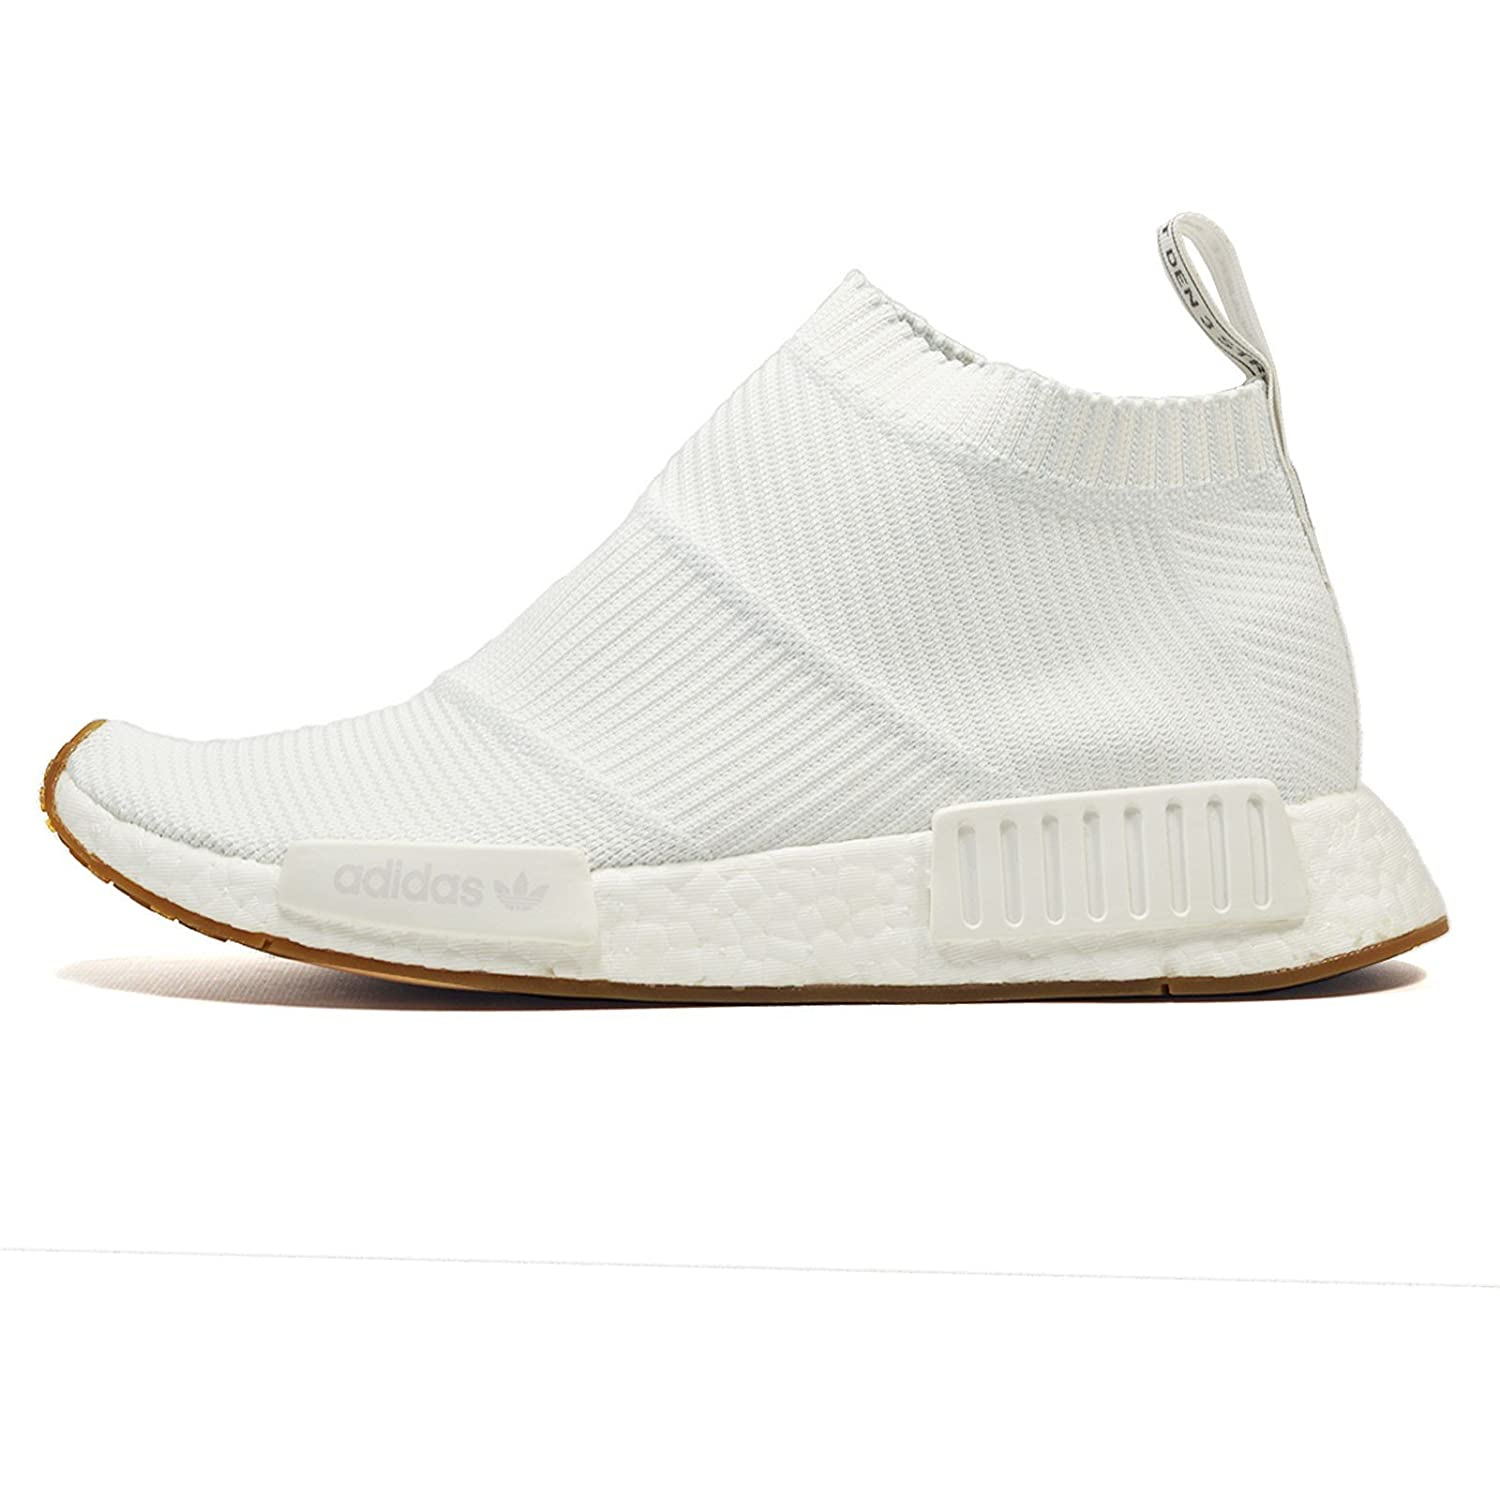 adidas NMD CS1 PK  Gum Pack  - ba7208  ADIDAS  Amazon.co.uk  Shoes   Bags 881e6ed003